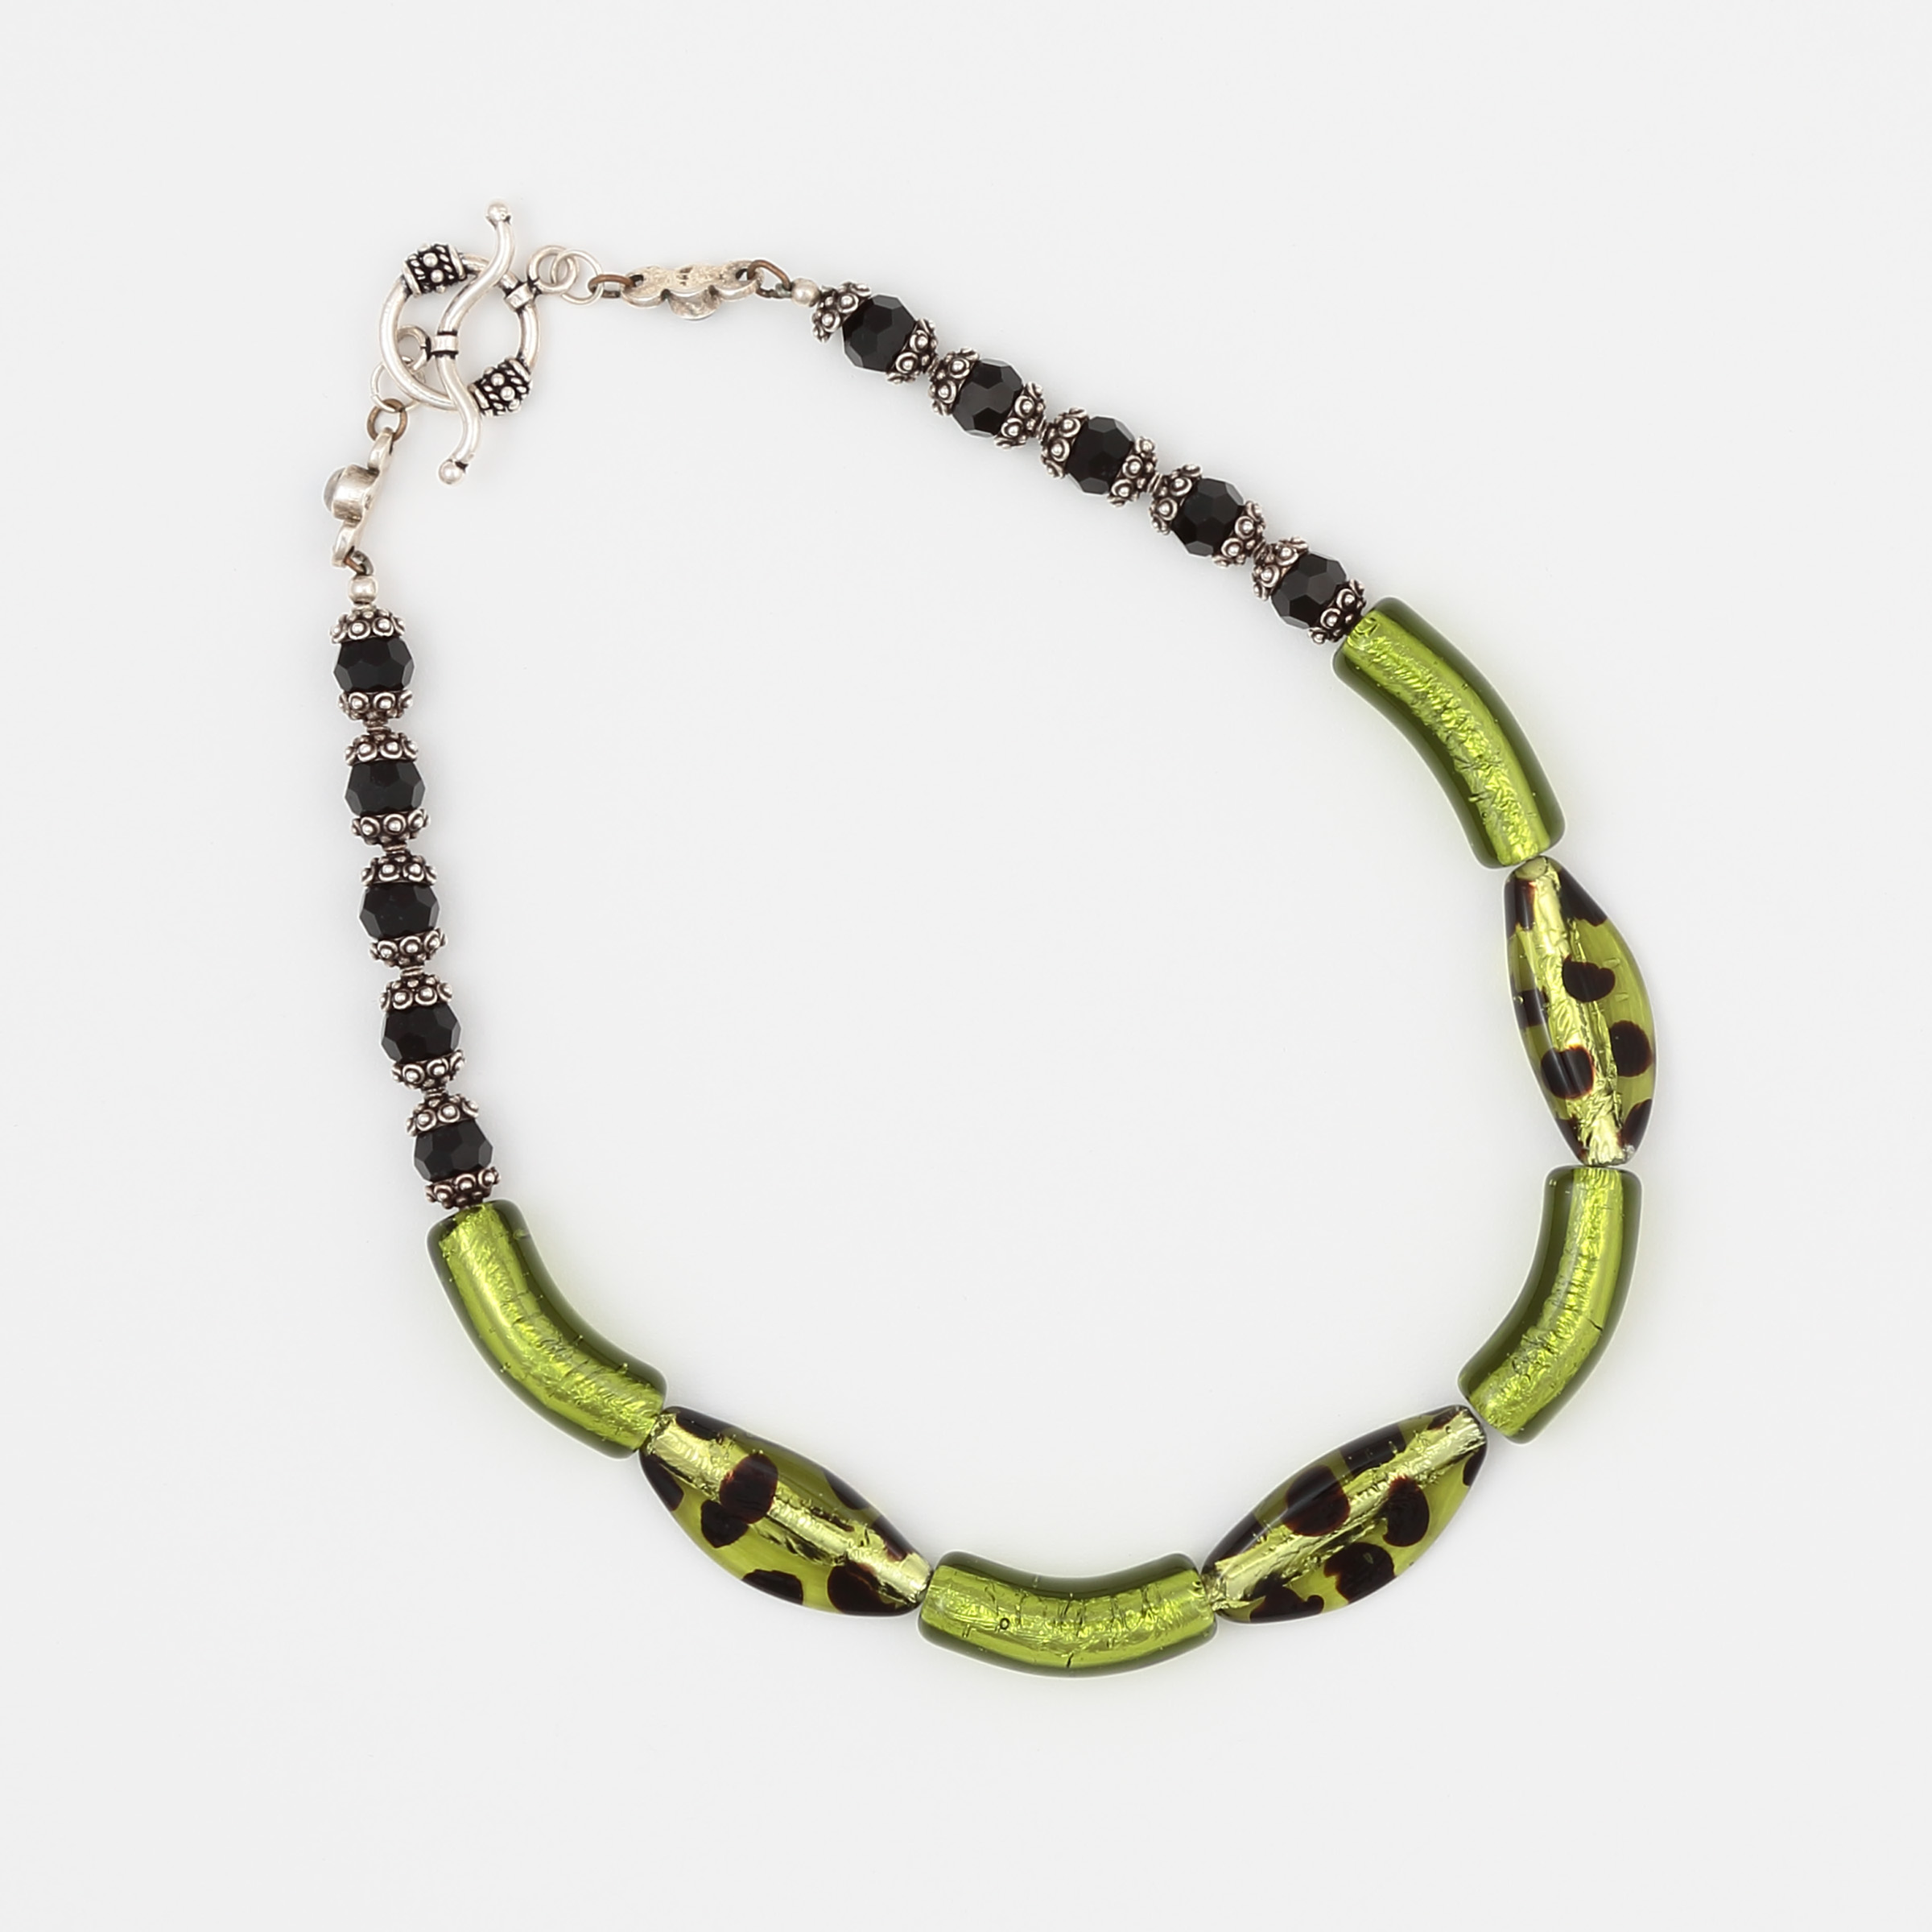 CLOVER NECKLACE- unique green and black art glass with sterling silver